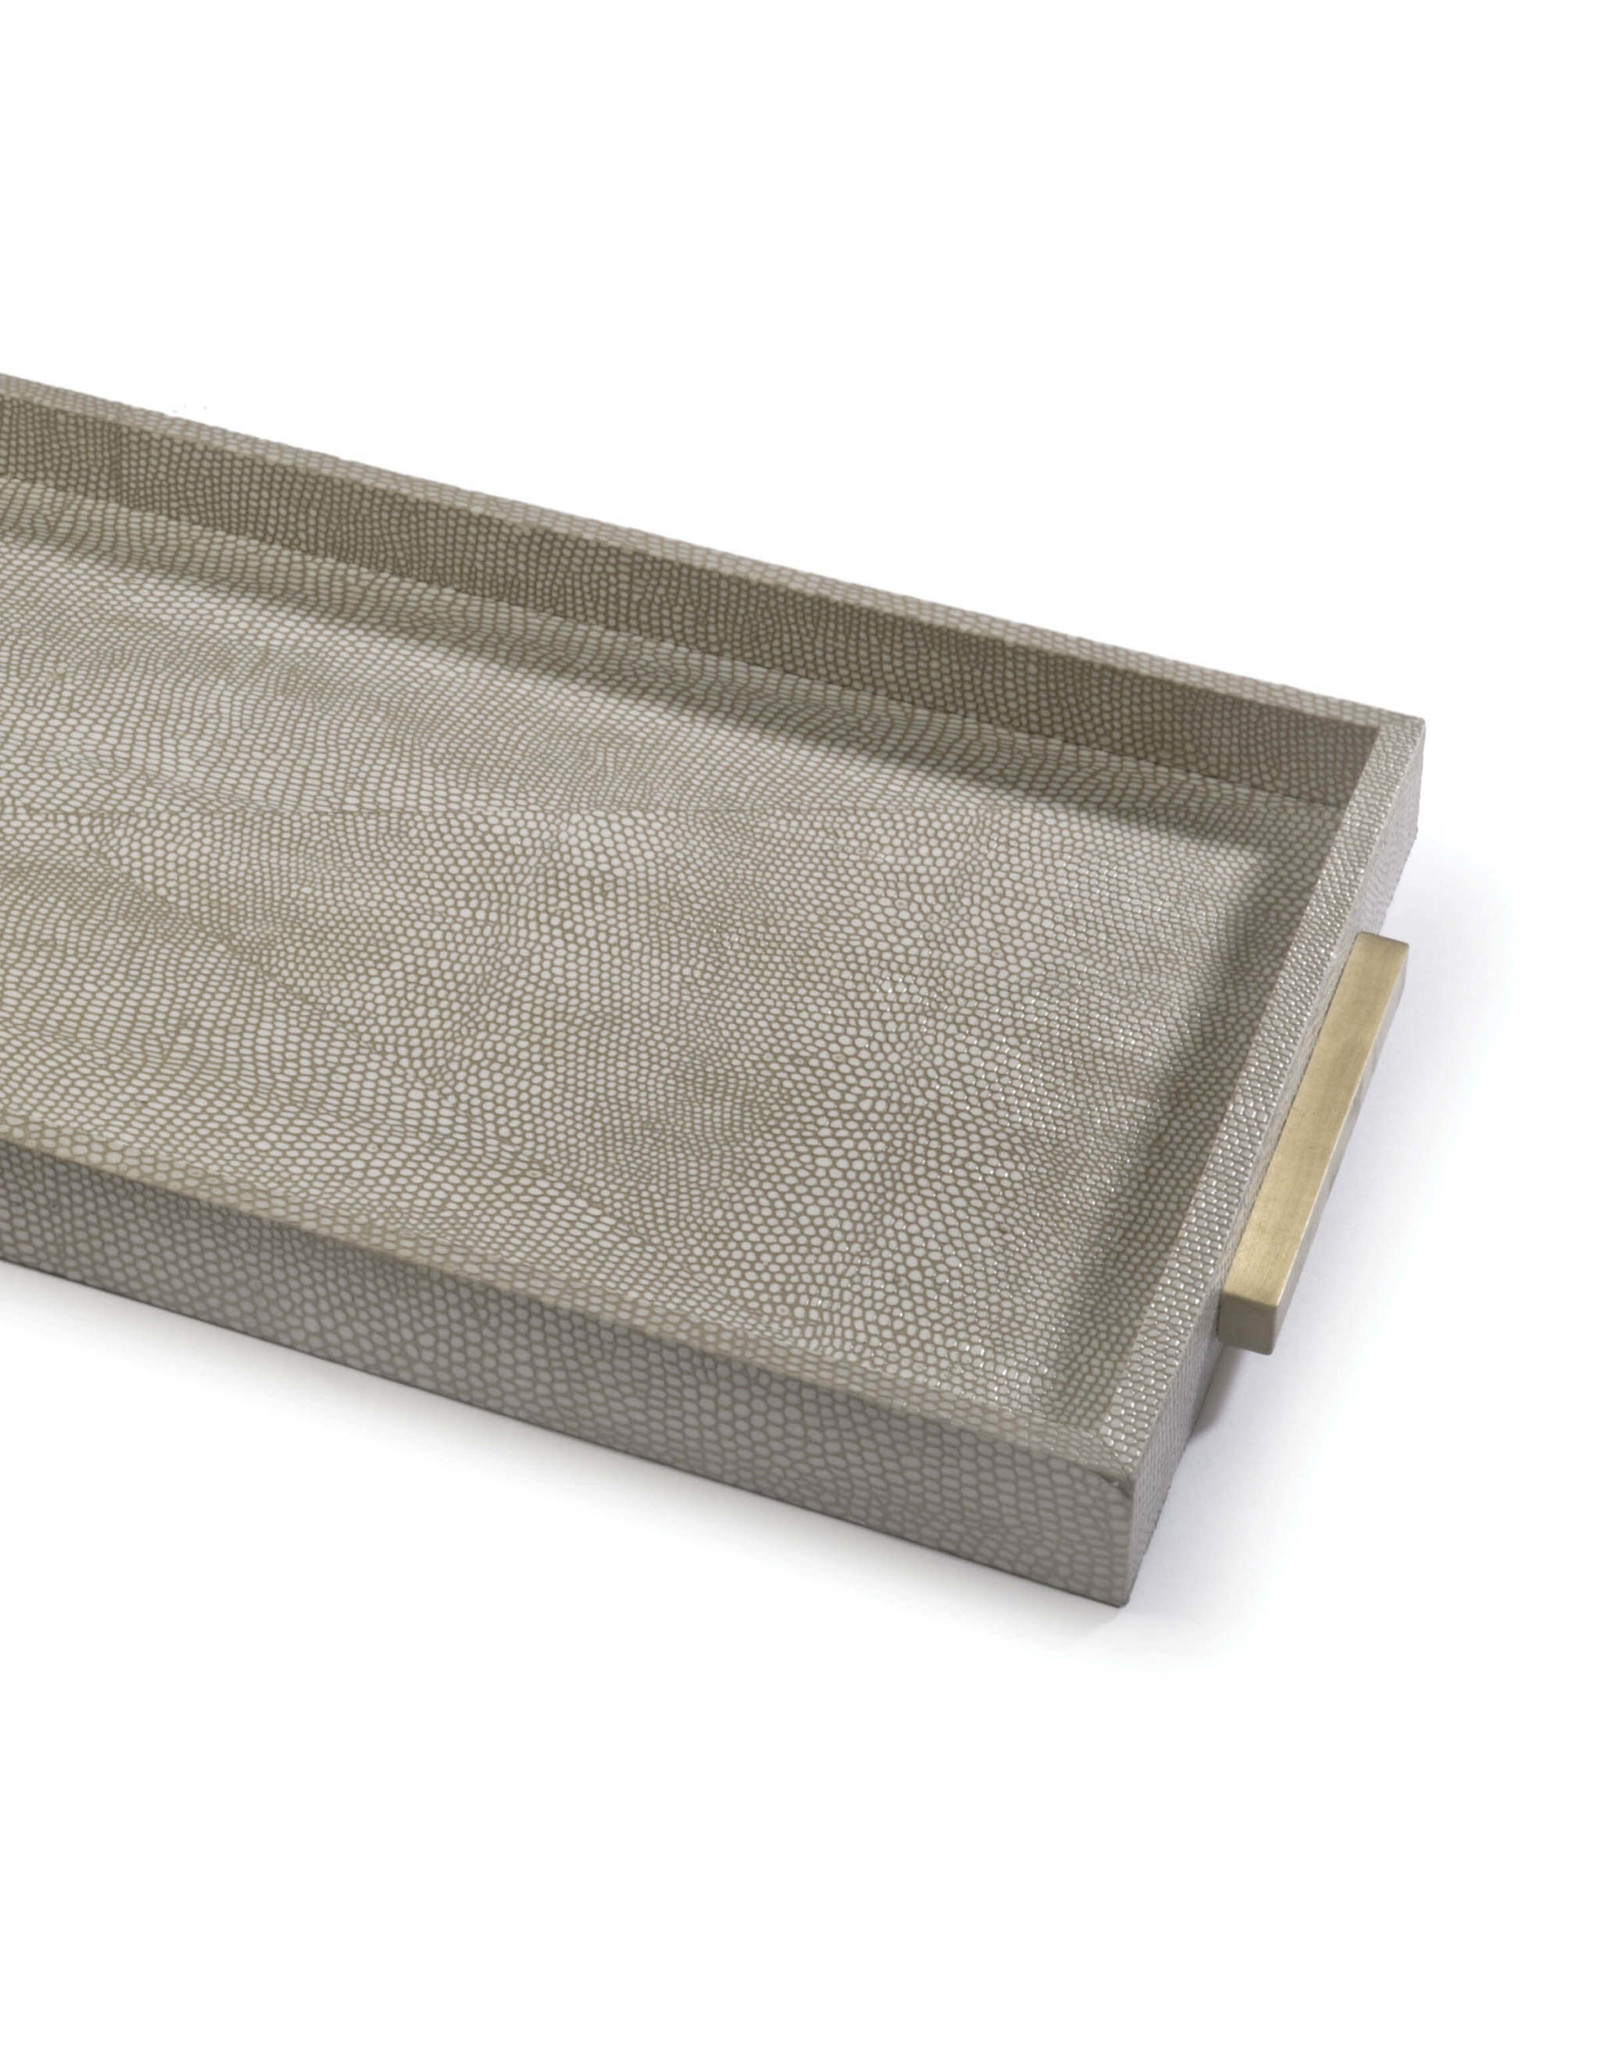 Regina Andrew Design Rectangle Shagreen Boutique Tray (Ivory Grey Python)